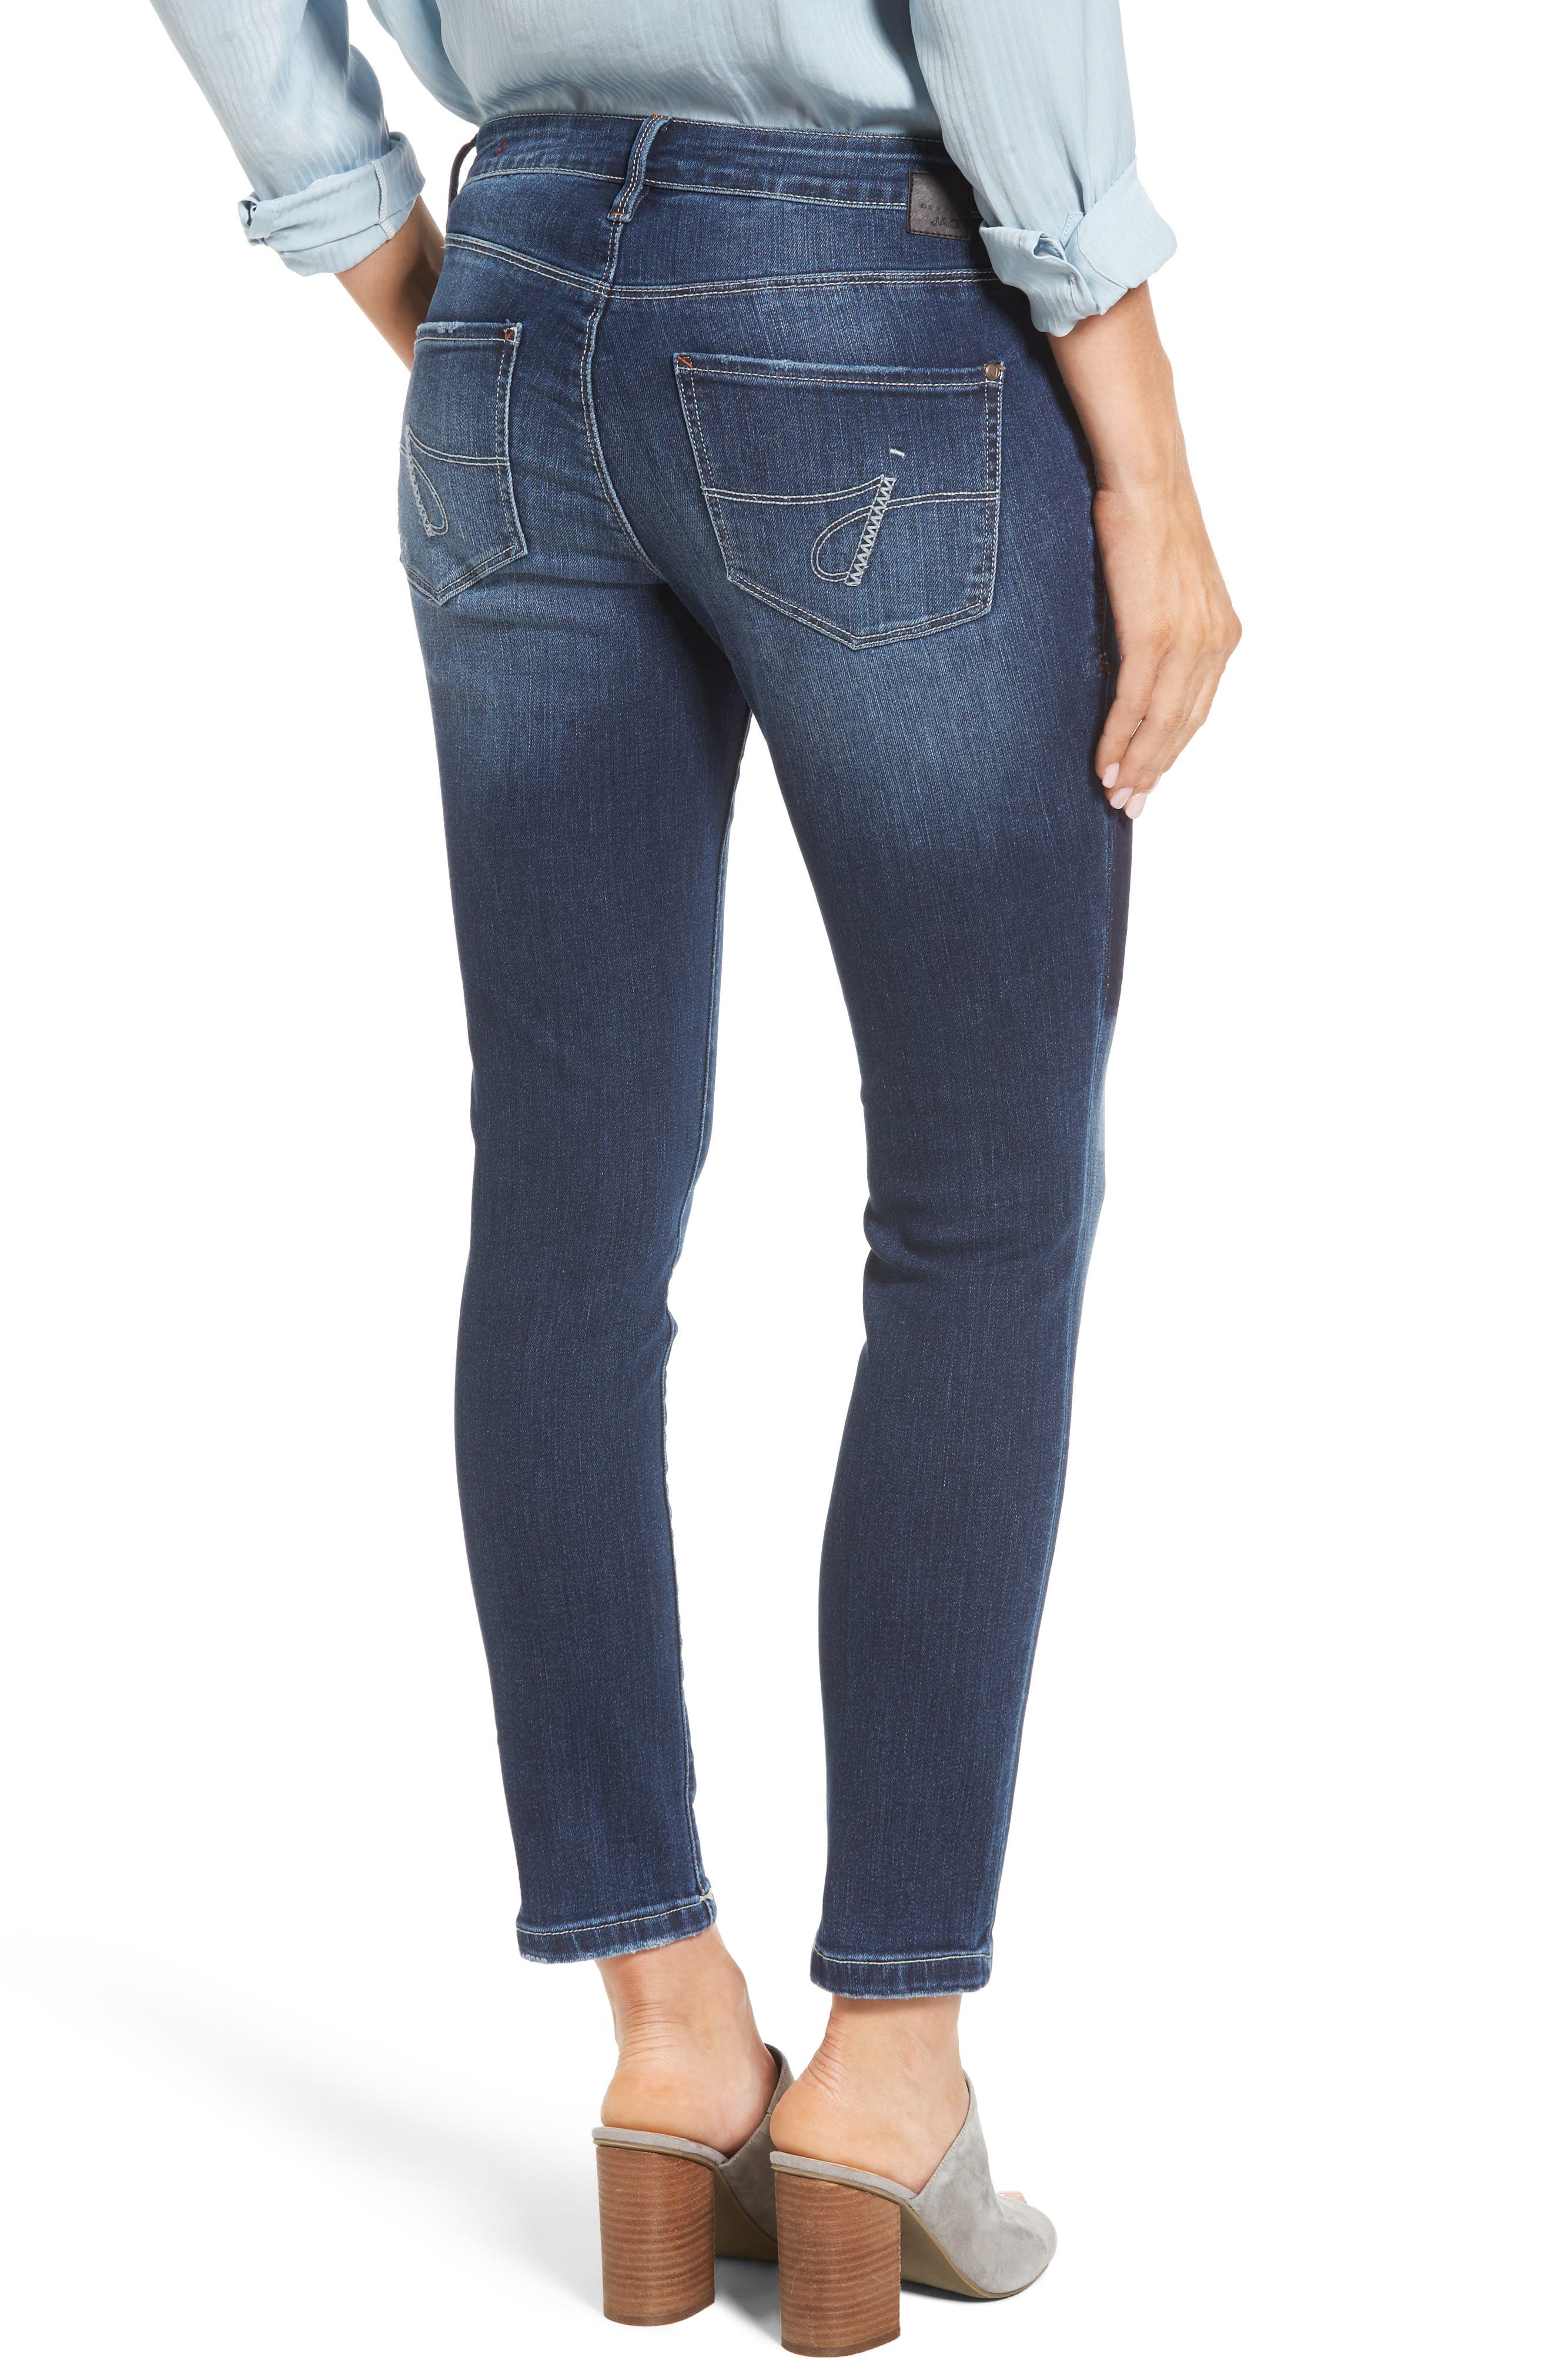 Mera Skinny Ankle Jeans,                         Main,                         color, 420